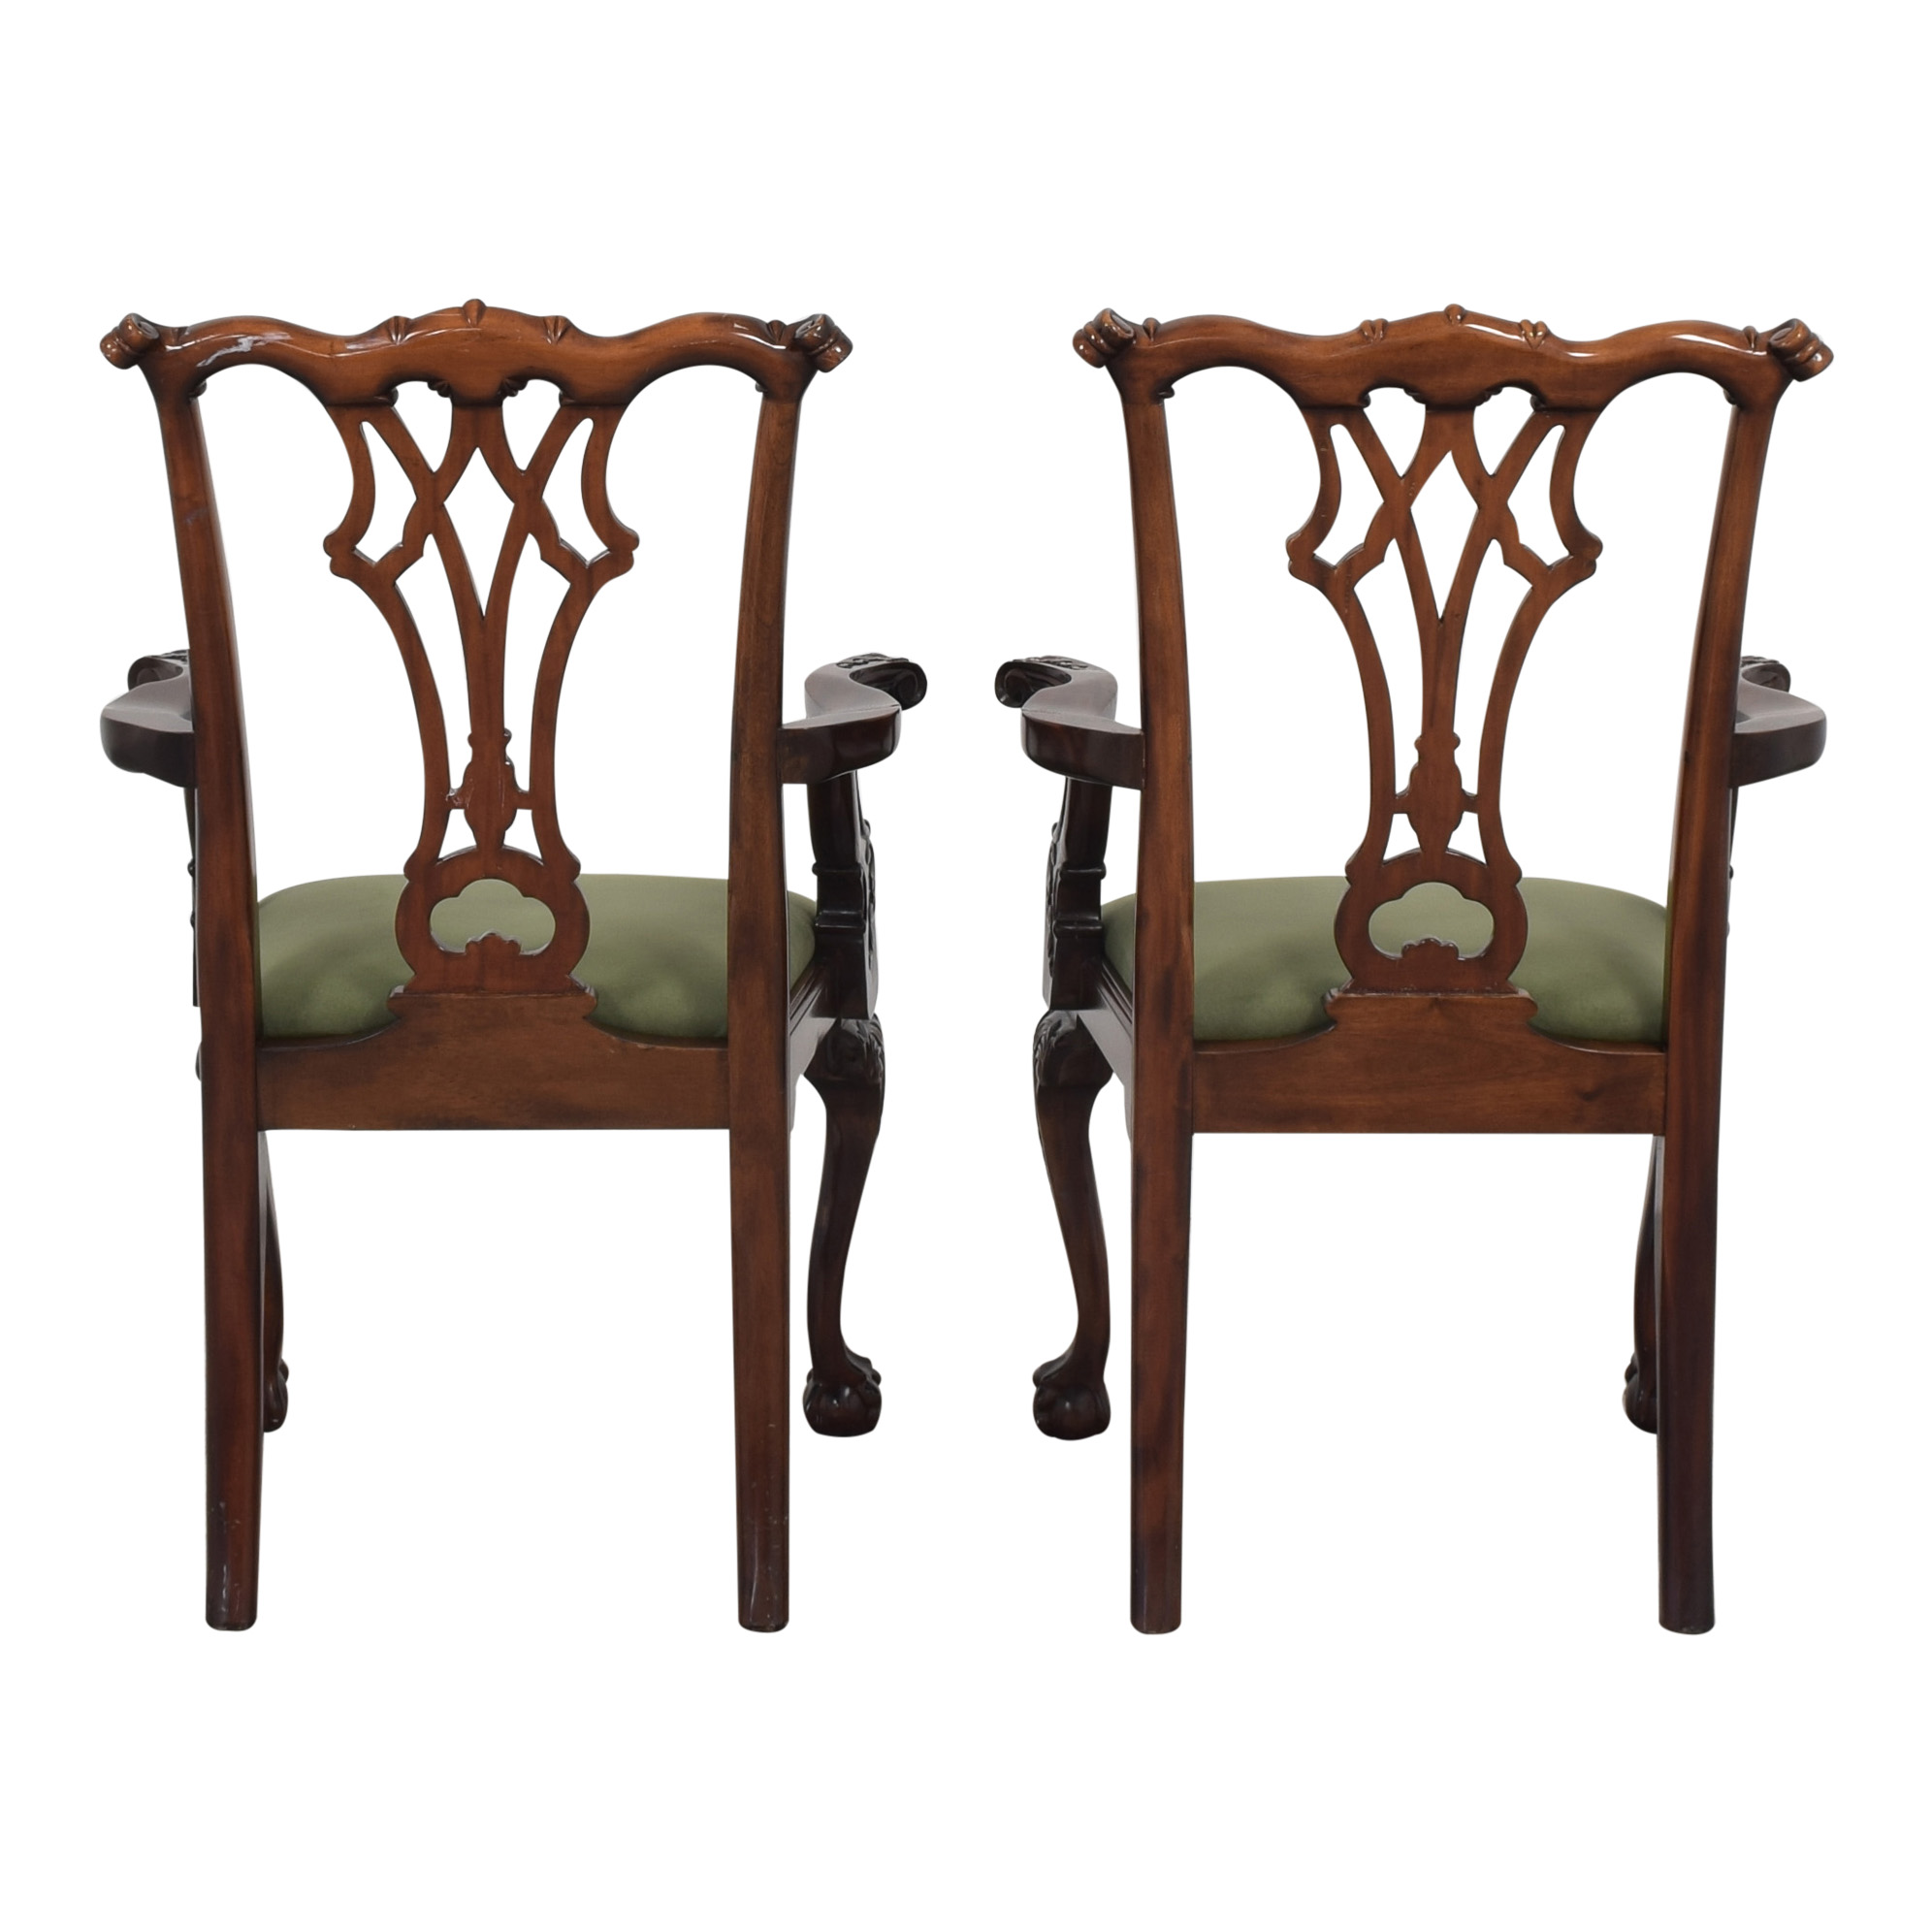 Greenbaum Interiors Queen Anne Style Dining Arm Chairs pa